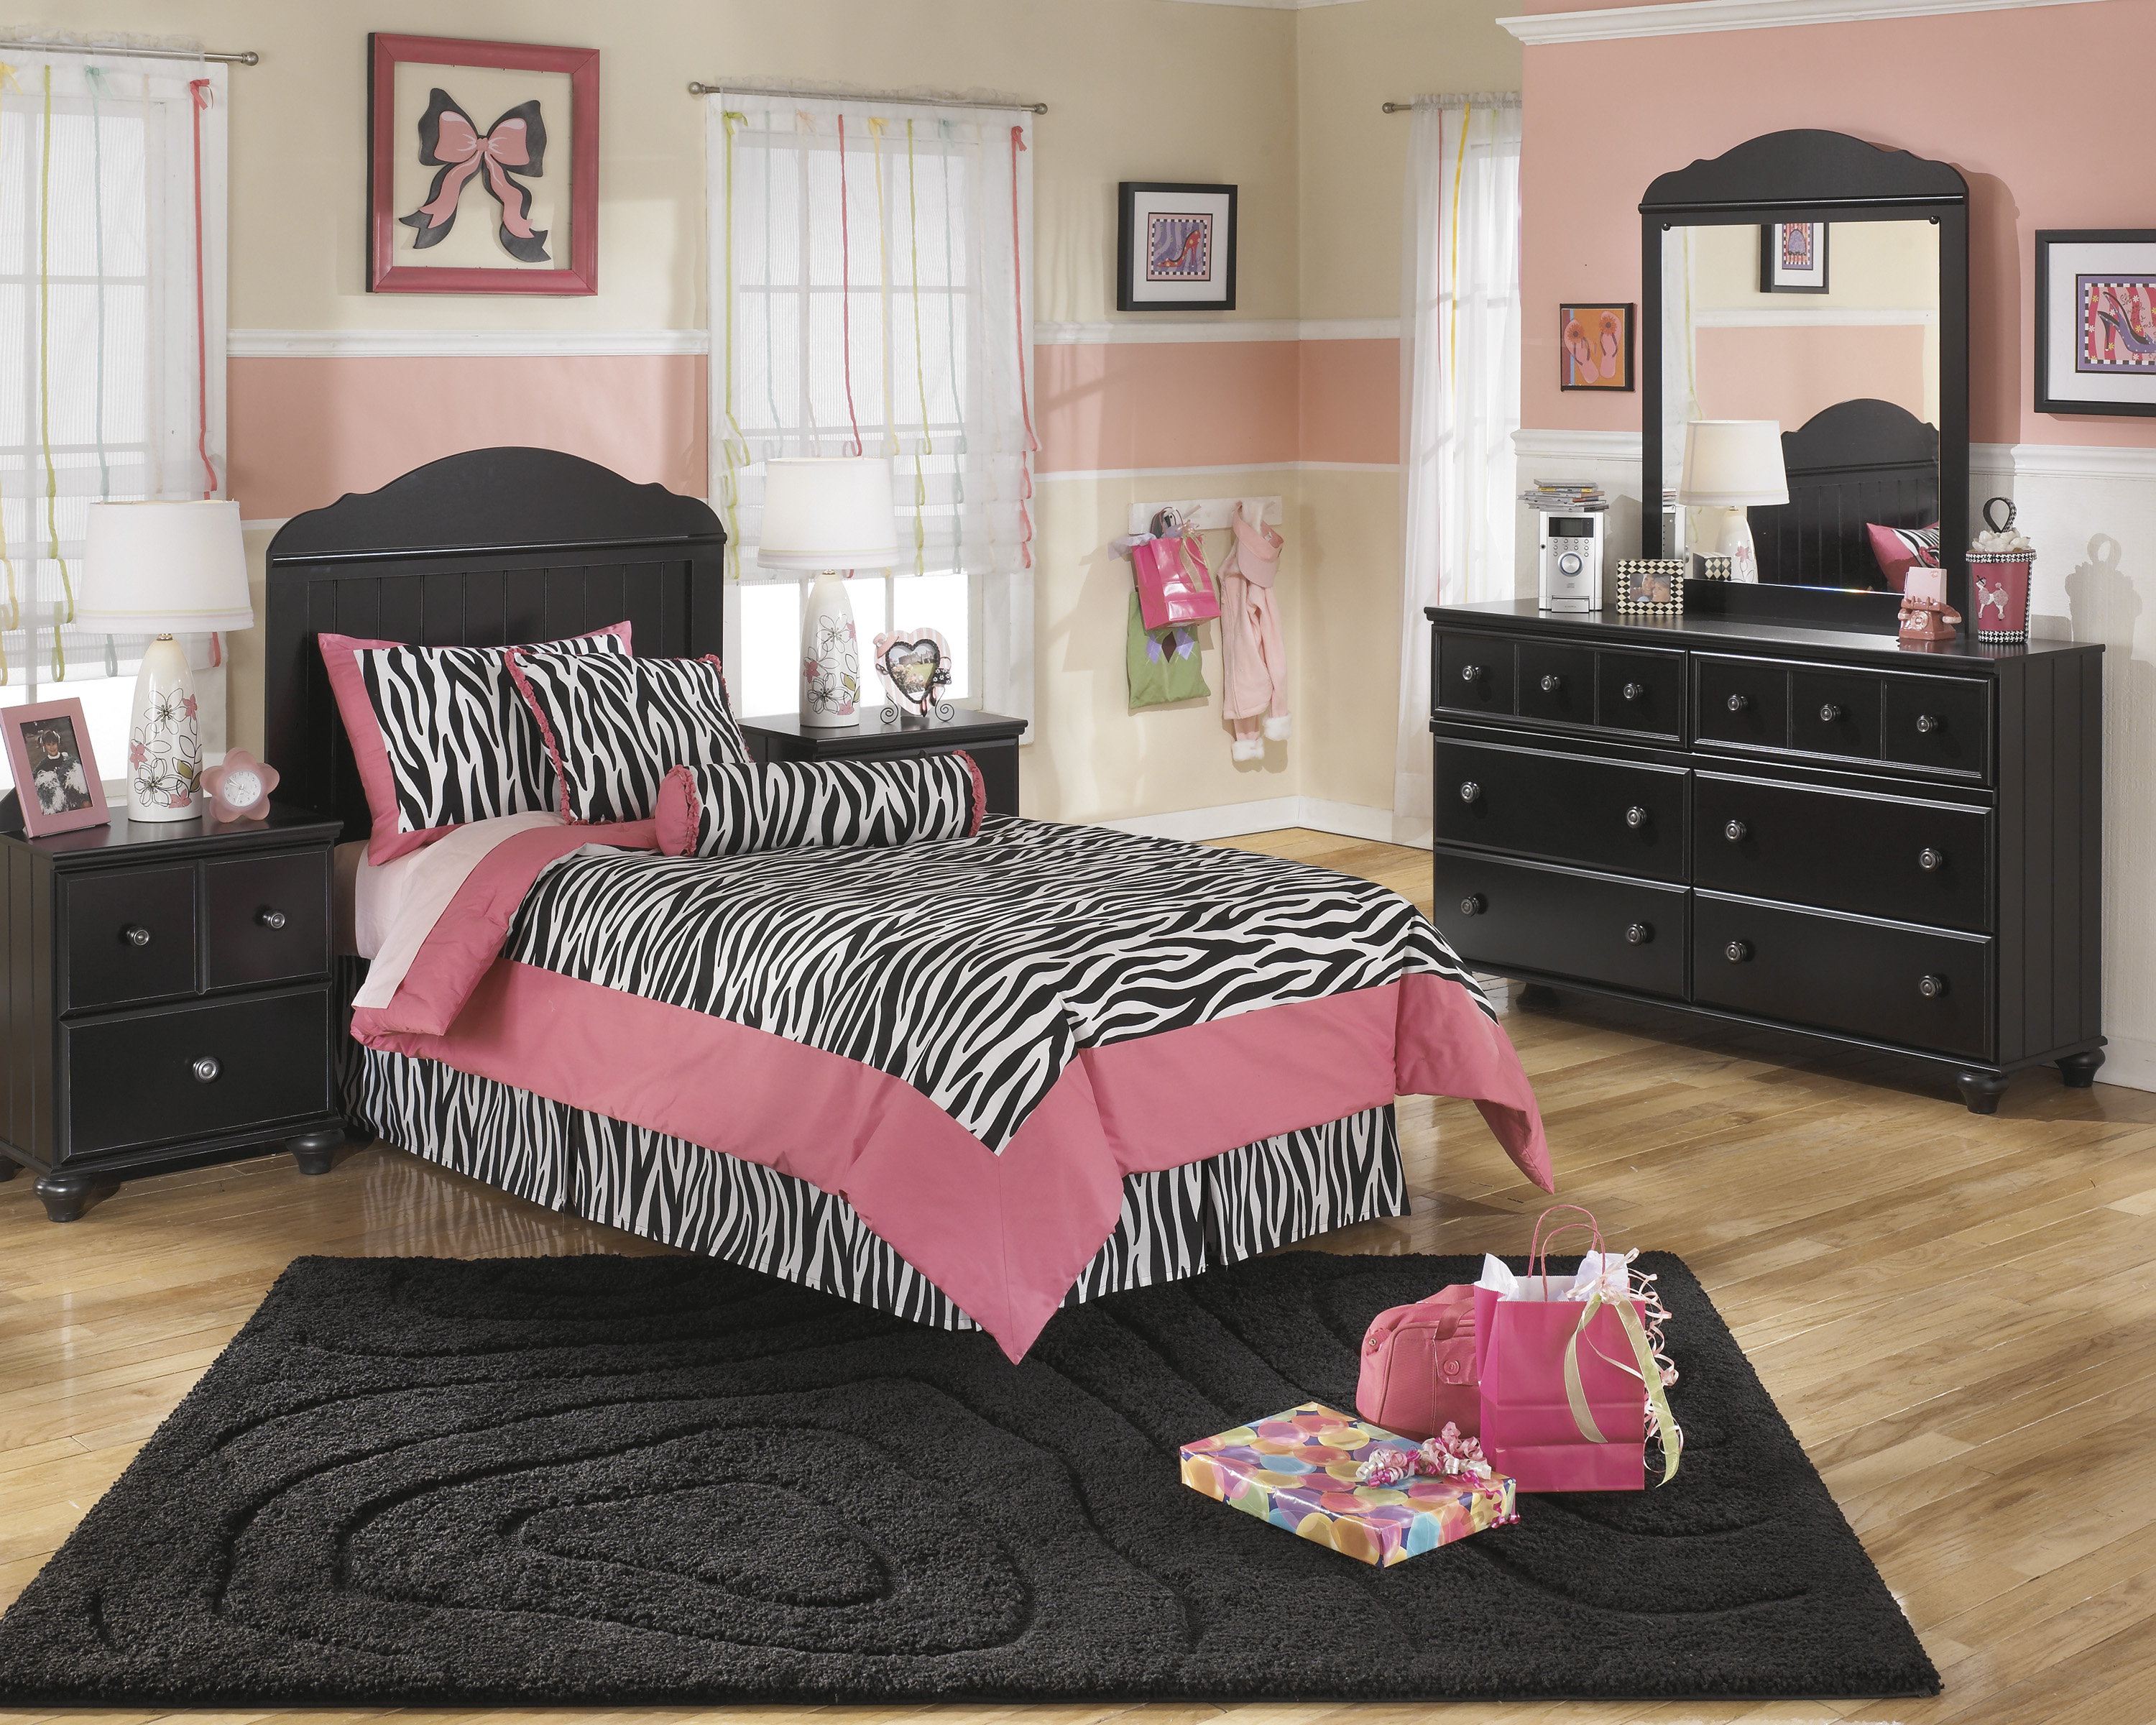 Bedroom Furniture Kitchener Lease To Own Bedroom Finance A Bed Rent Bunk Bed Online Bed